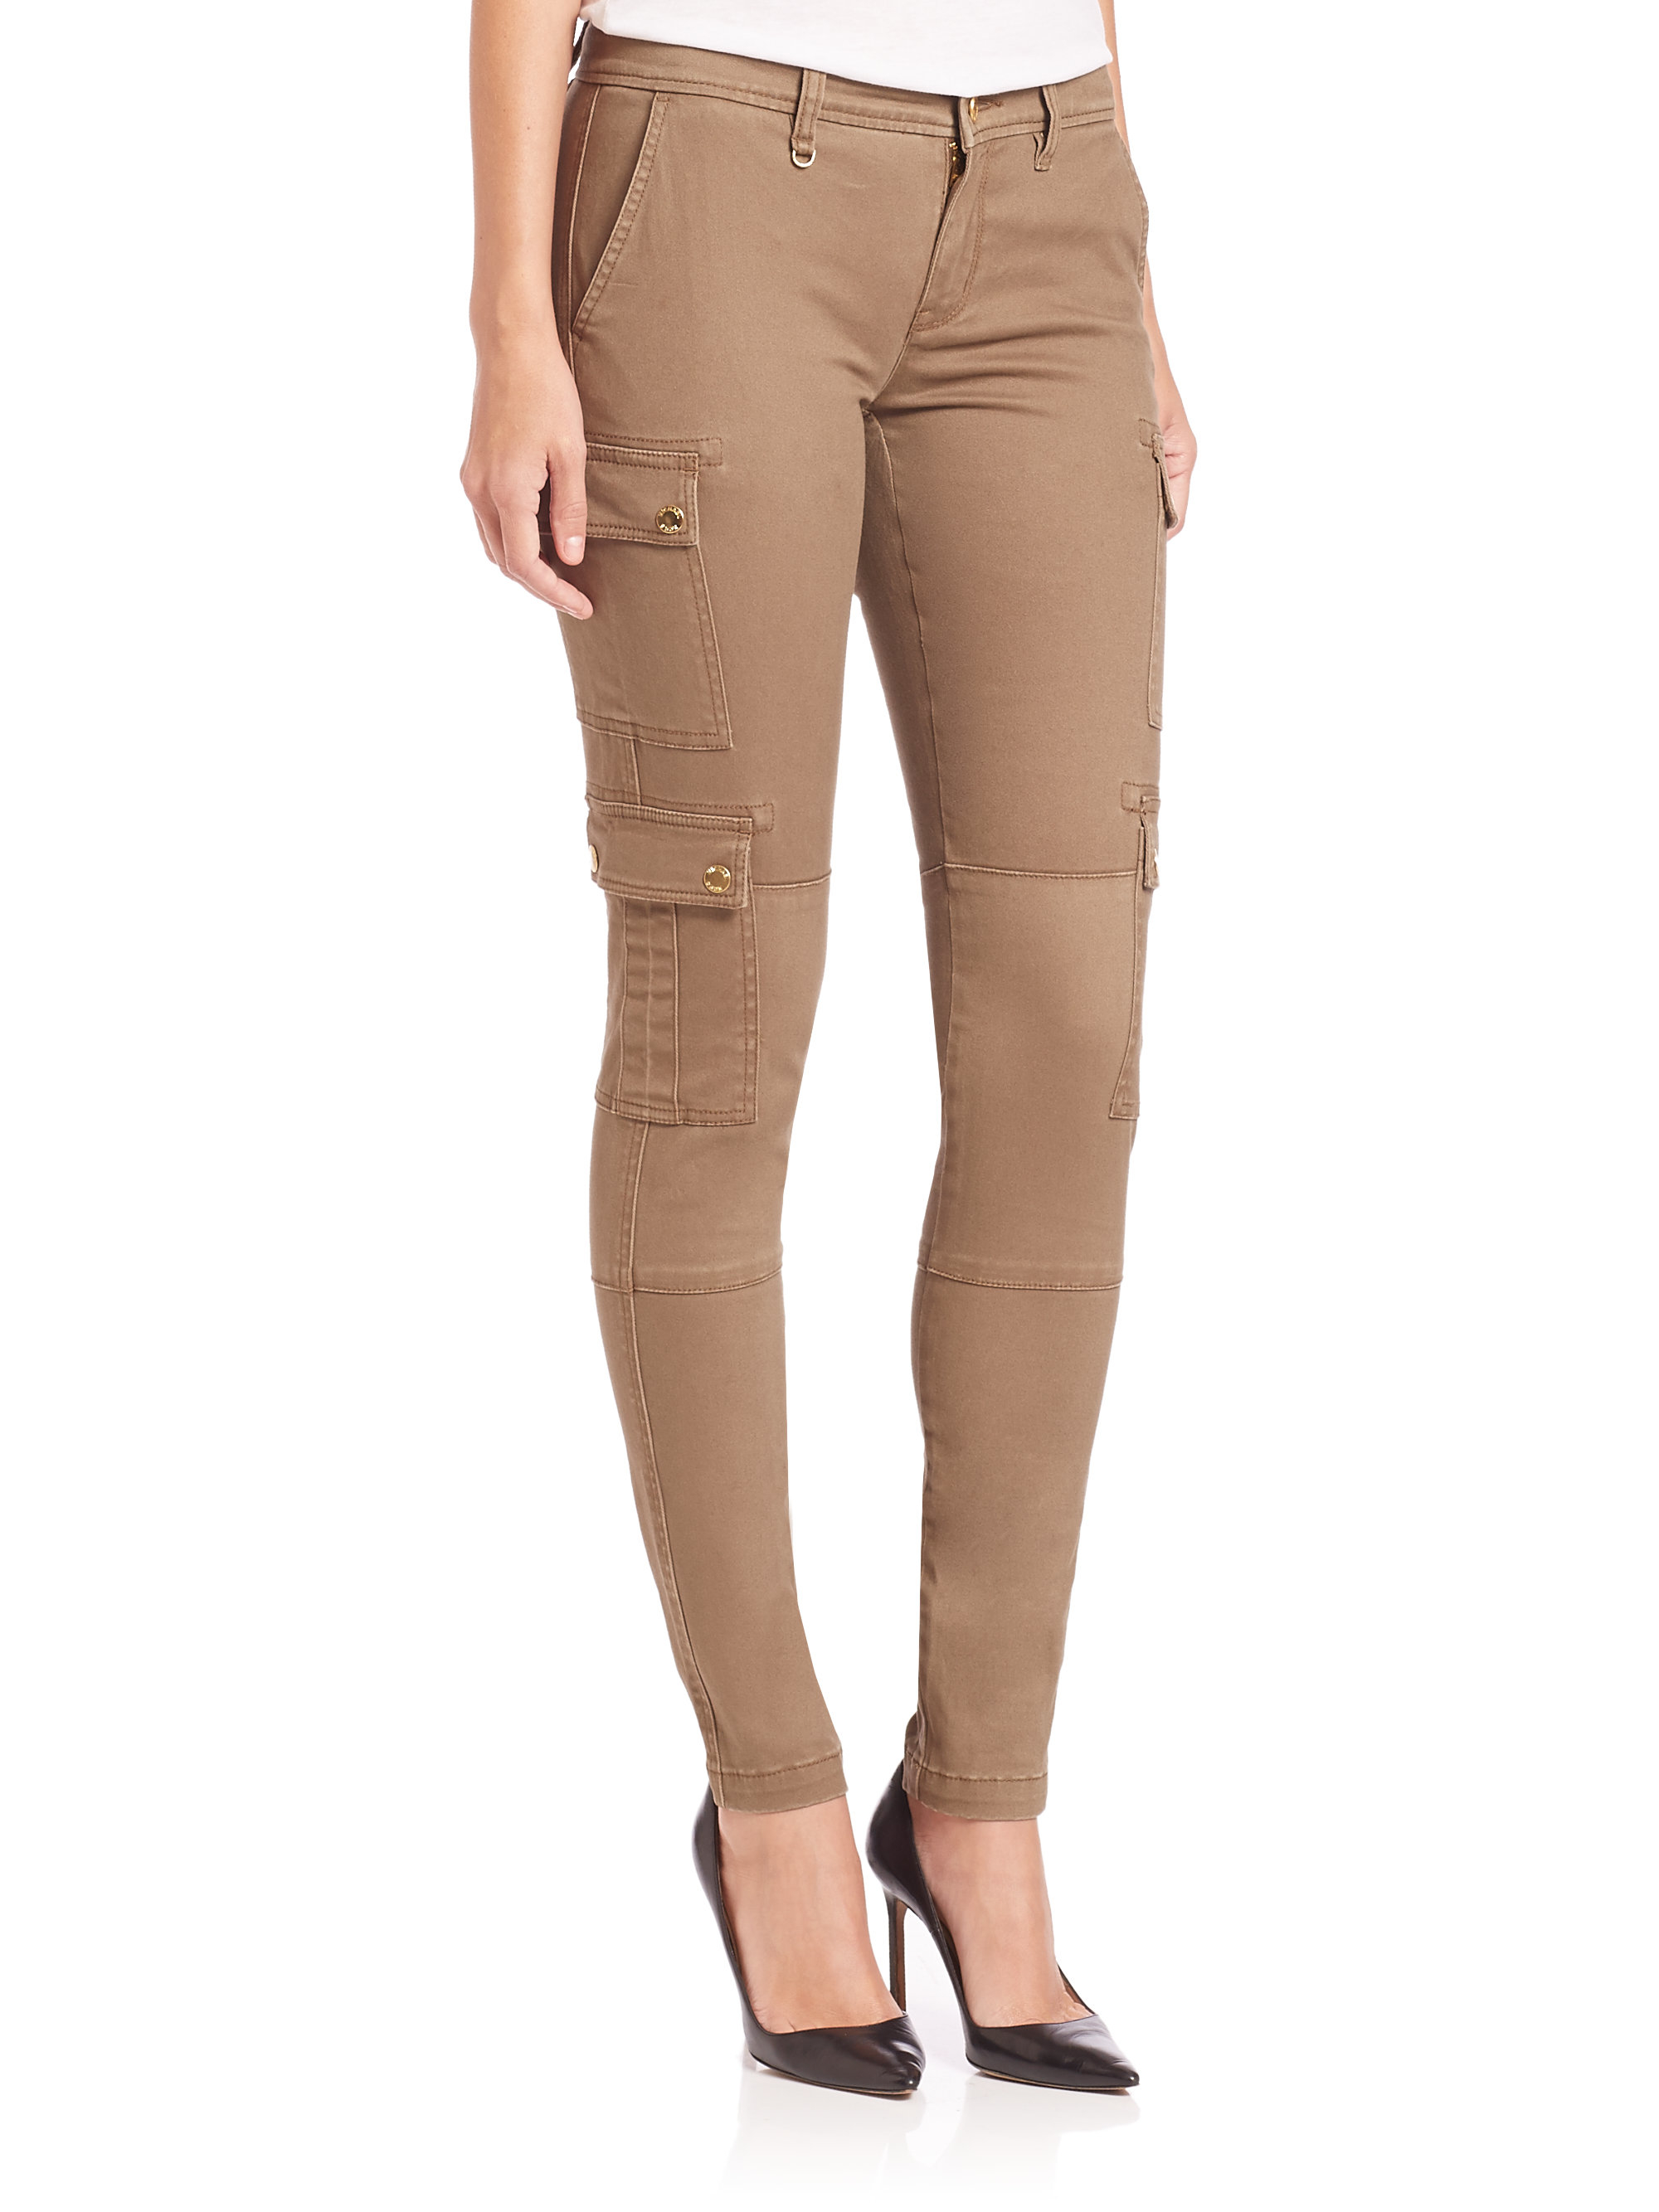 Michael michael kors Safari Cargo Pants in Natural | Lyst